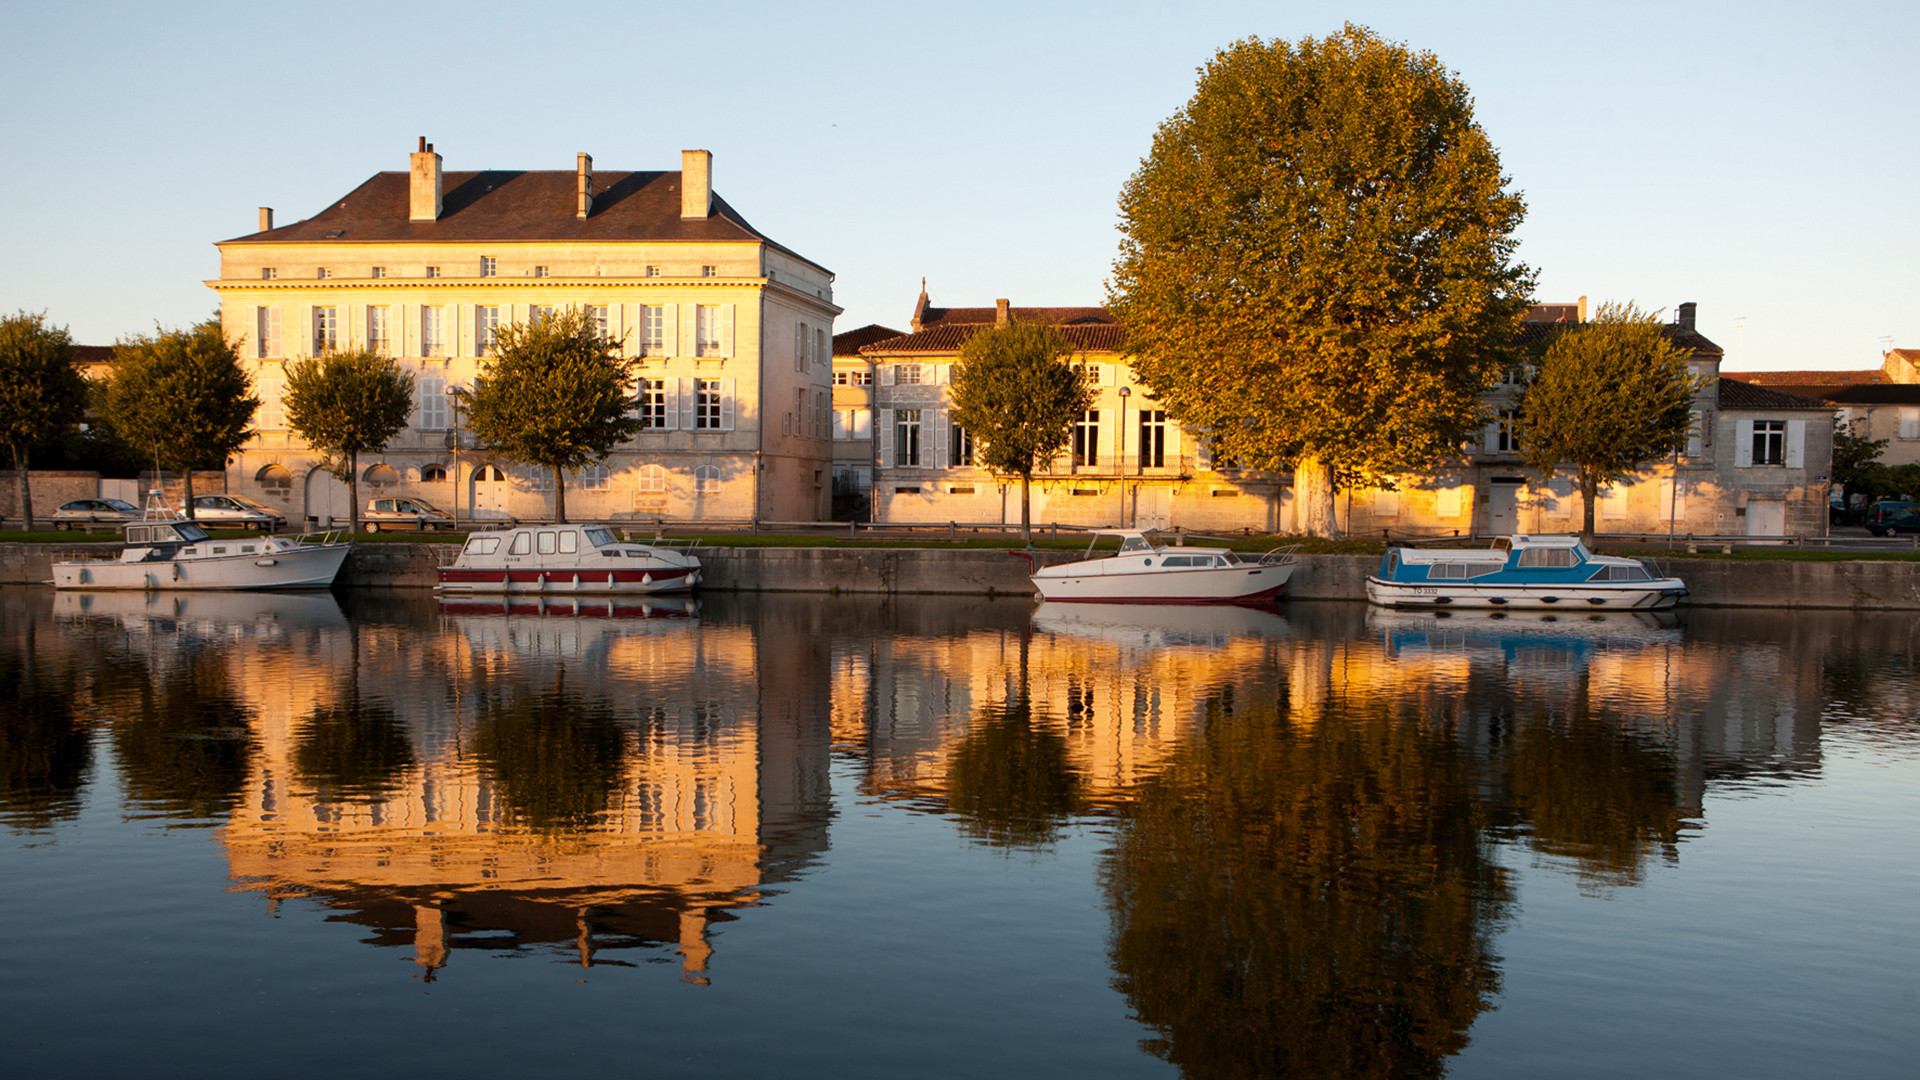 The picturesque Courvoisier house in Jarnac